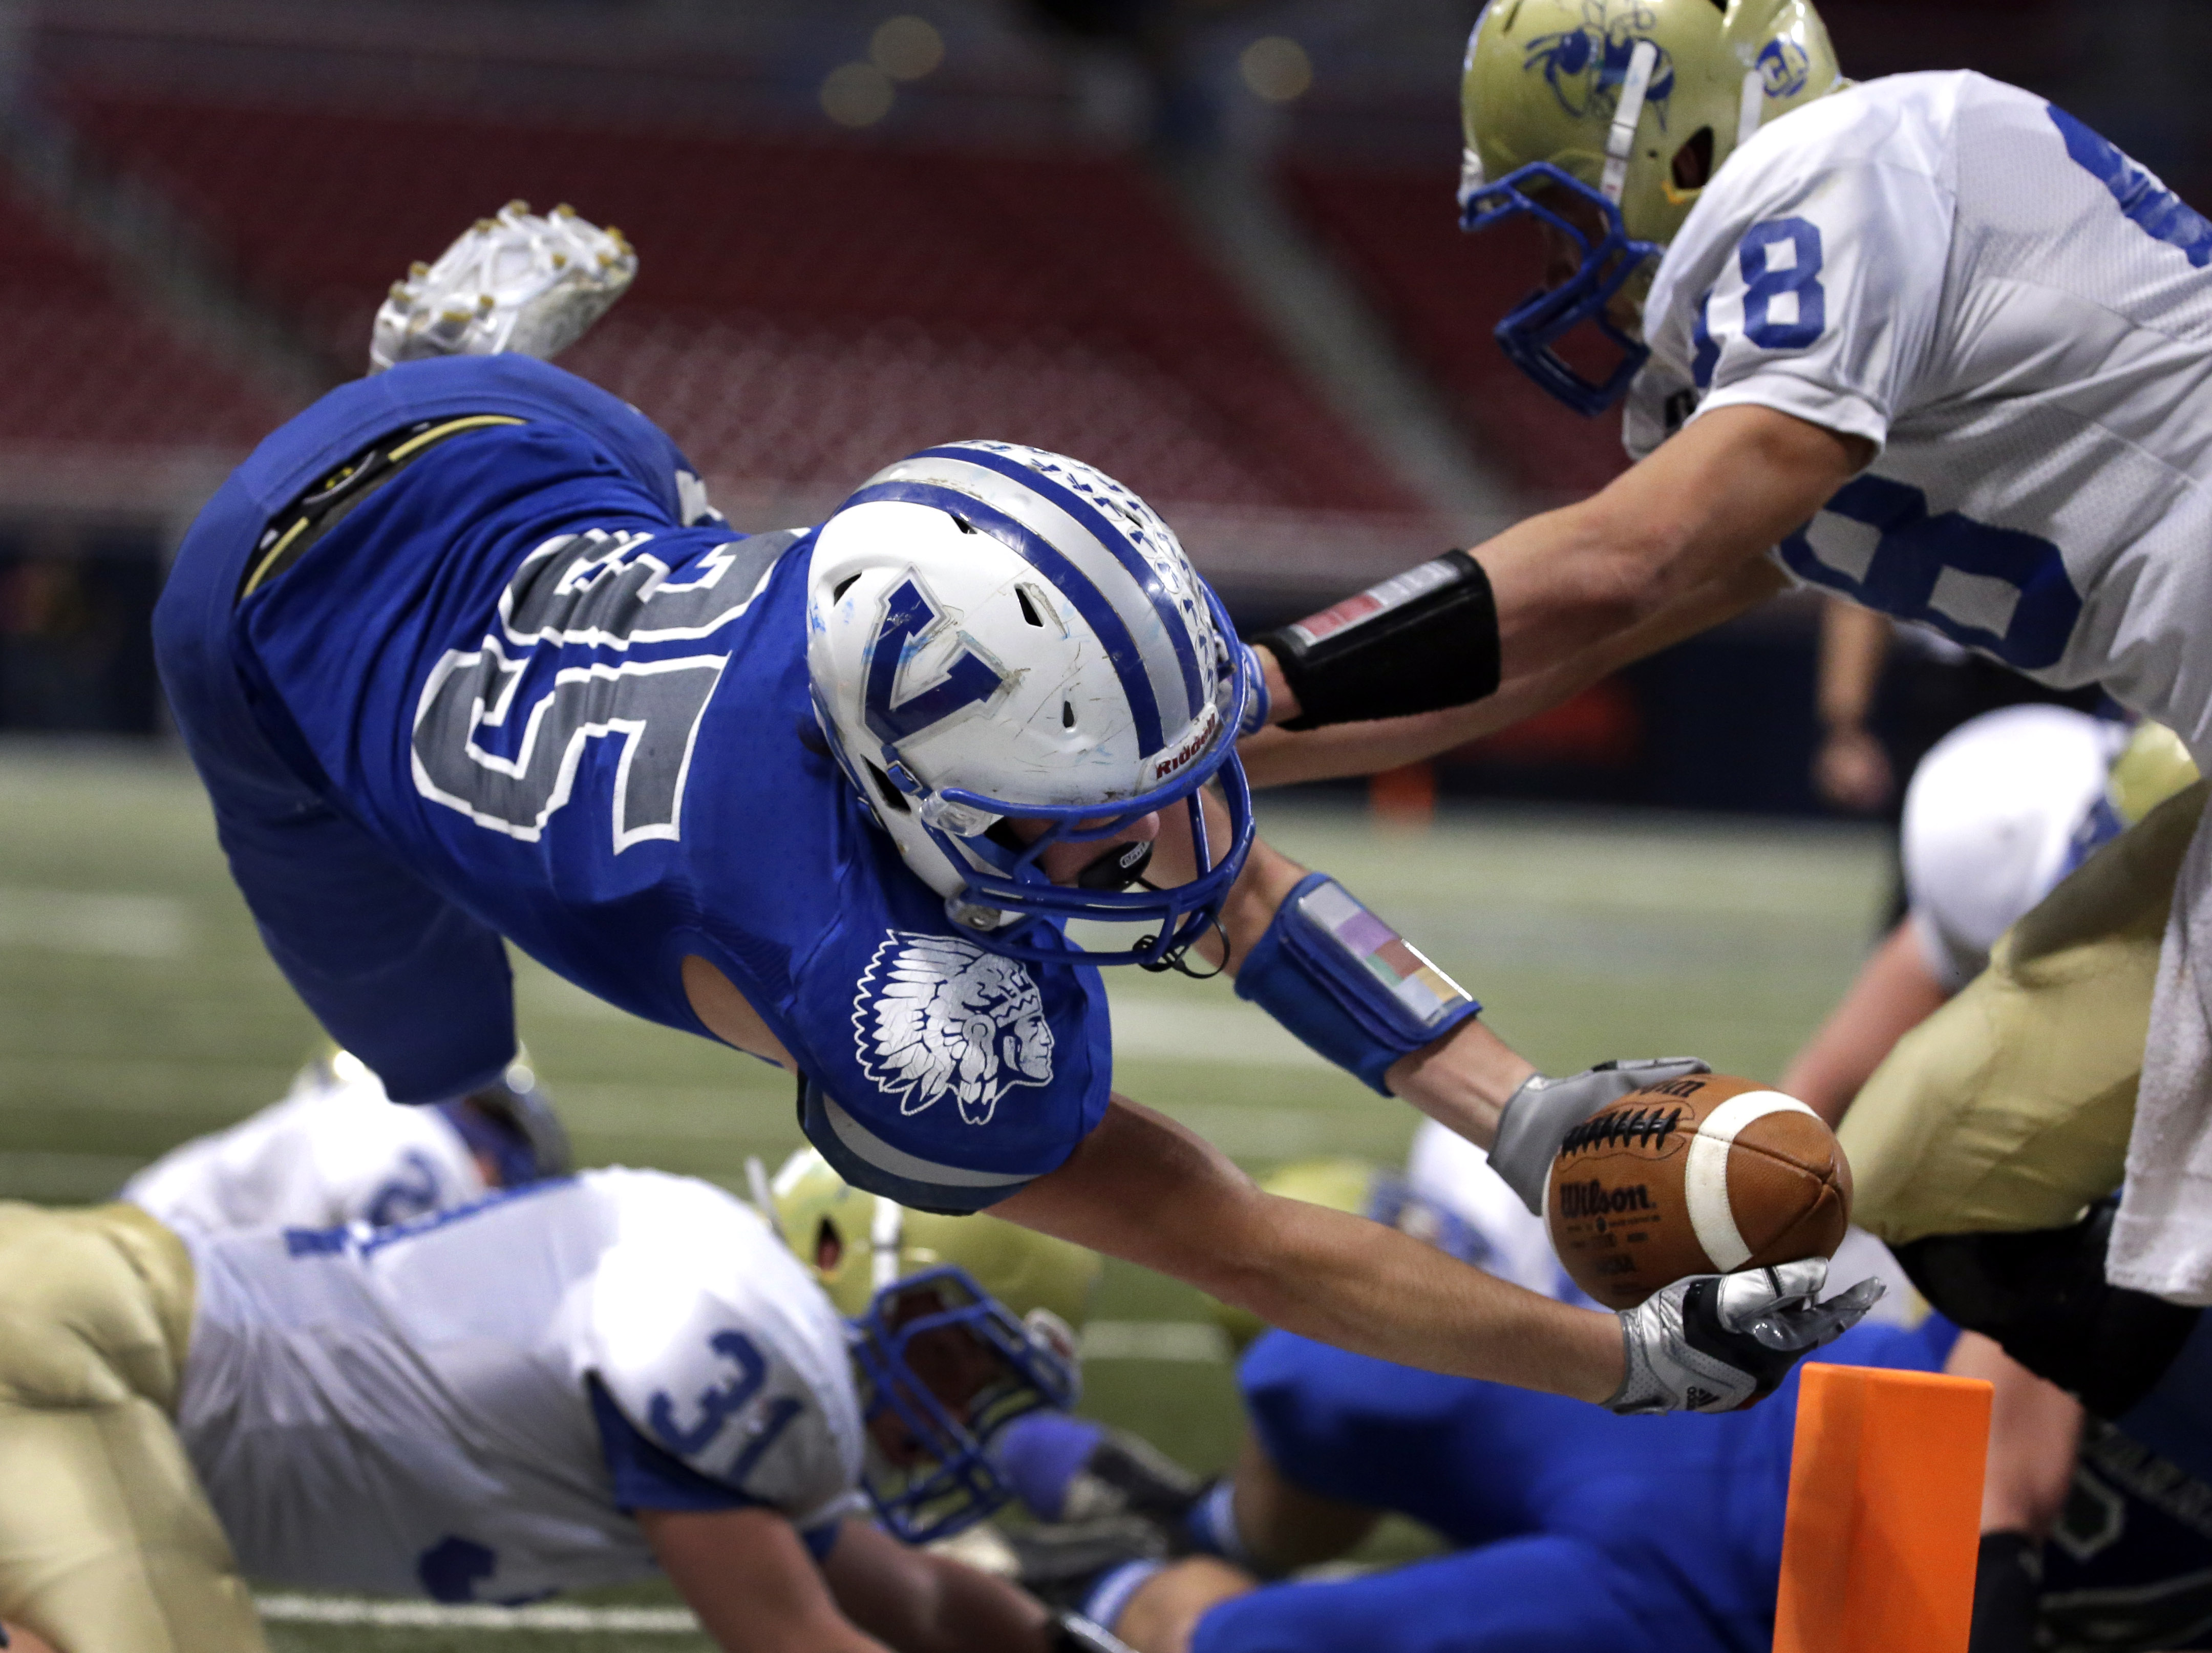 Valle Catholic's Nicholas Oberle dives but comes up just short of the end zone as his is pushed out of bounds (Photo: Jeff Roberson, Associated Press)